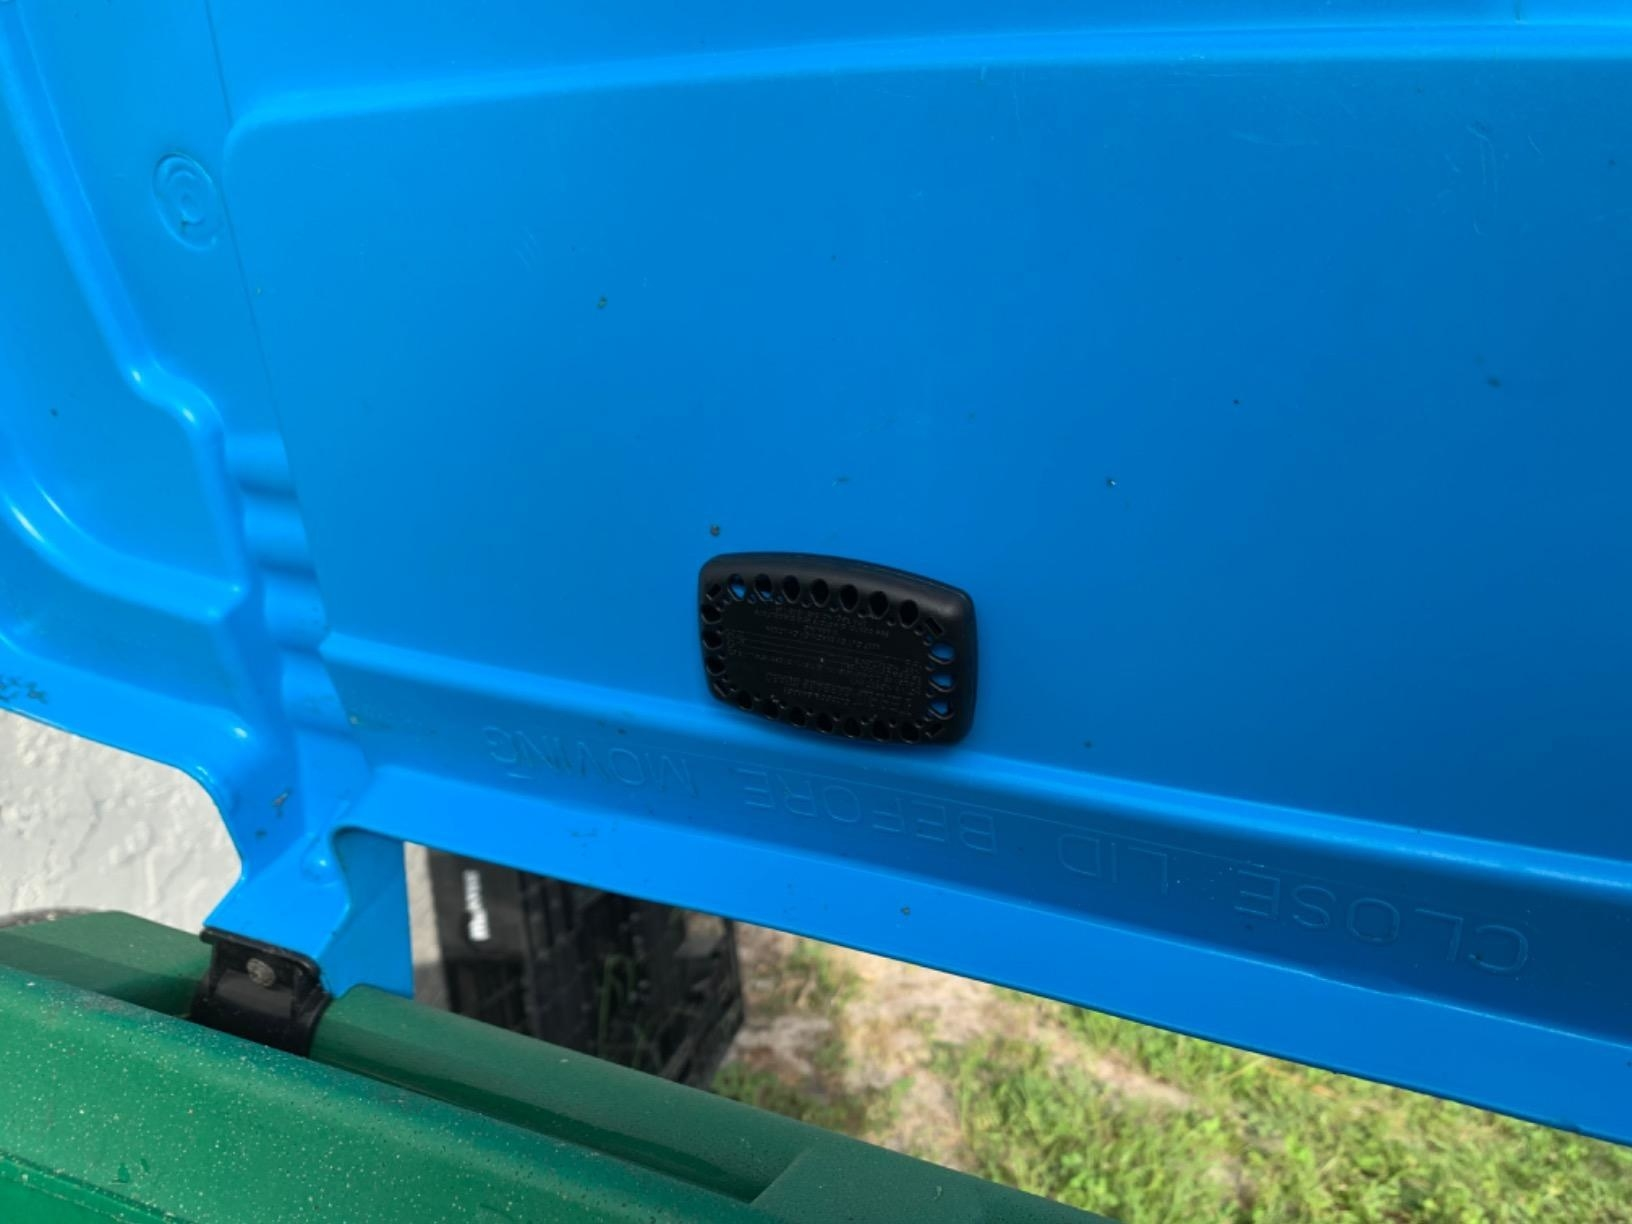 Reviewer photo of the rectangle guard in black attached to the inside of a garbage can lid